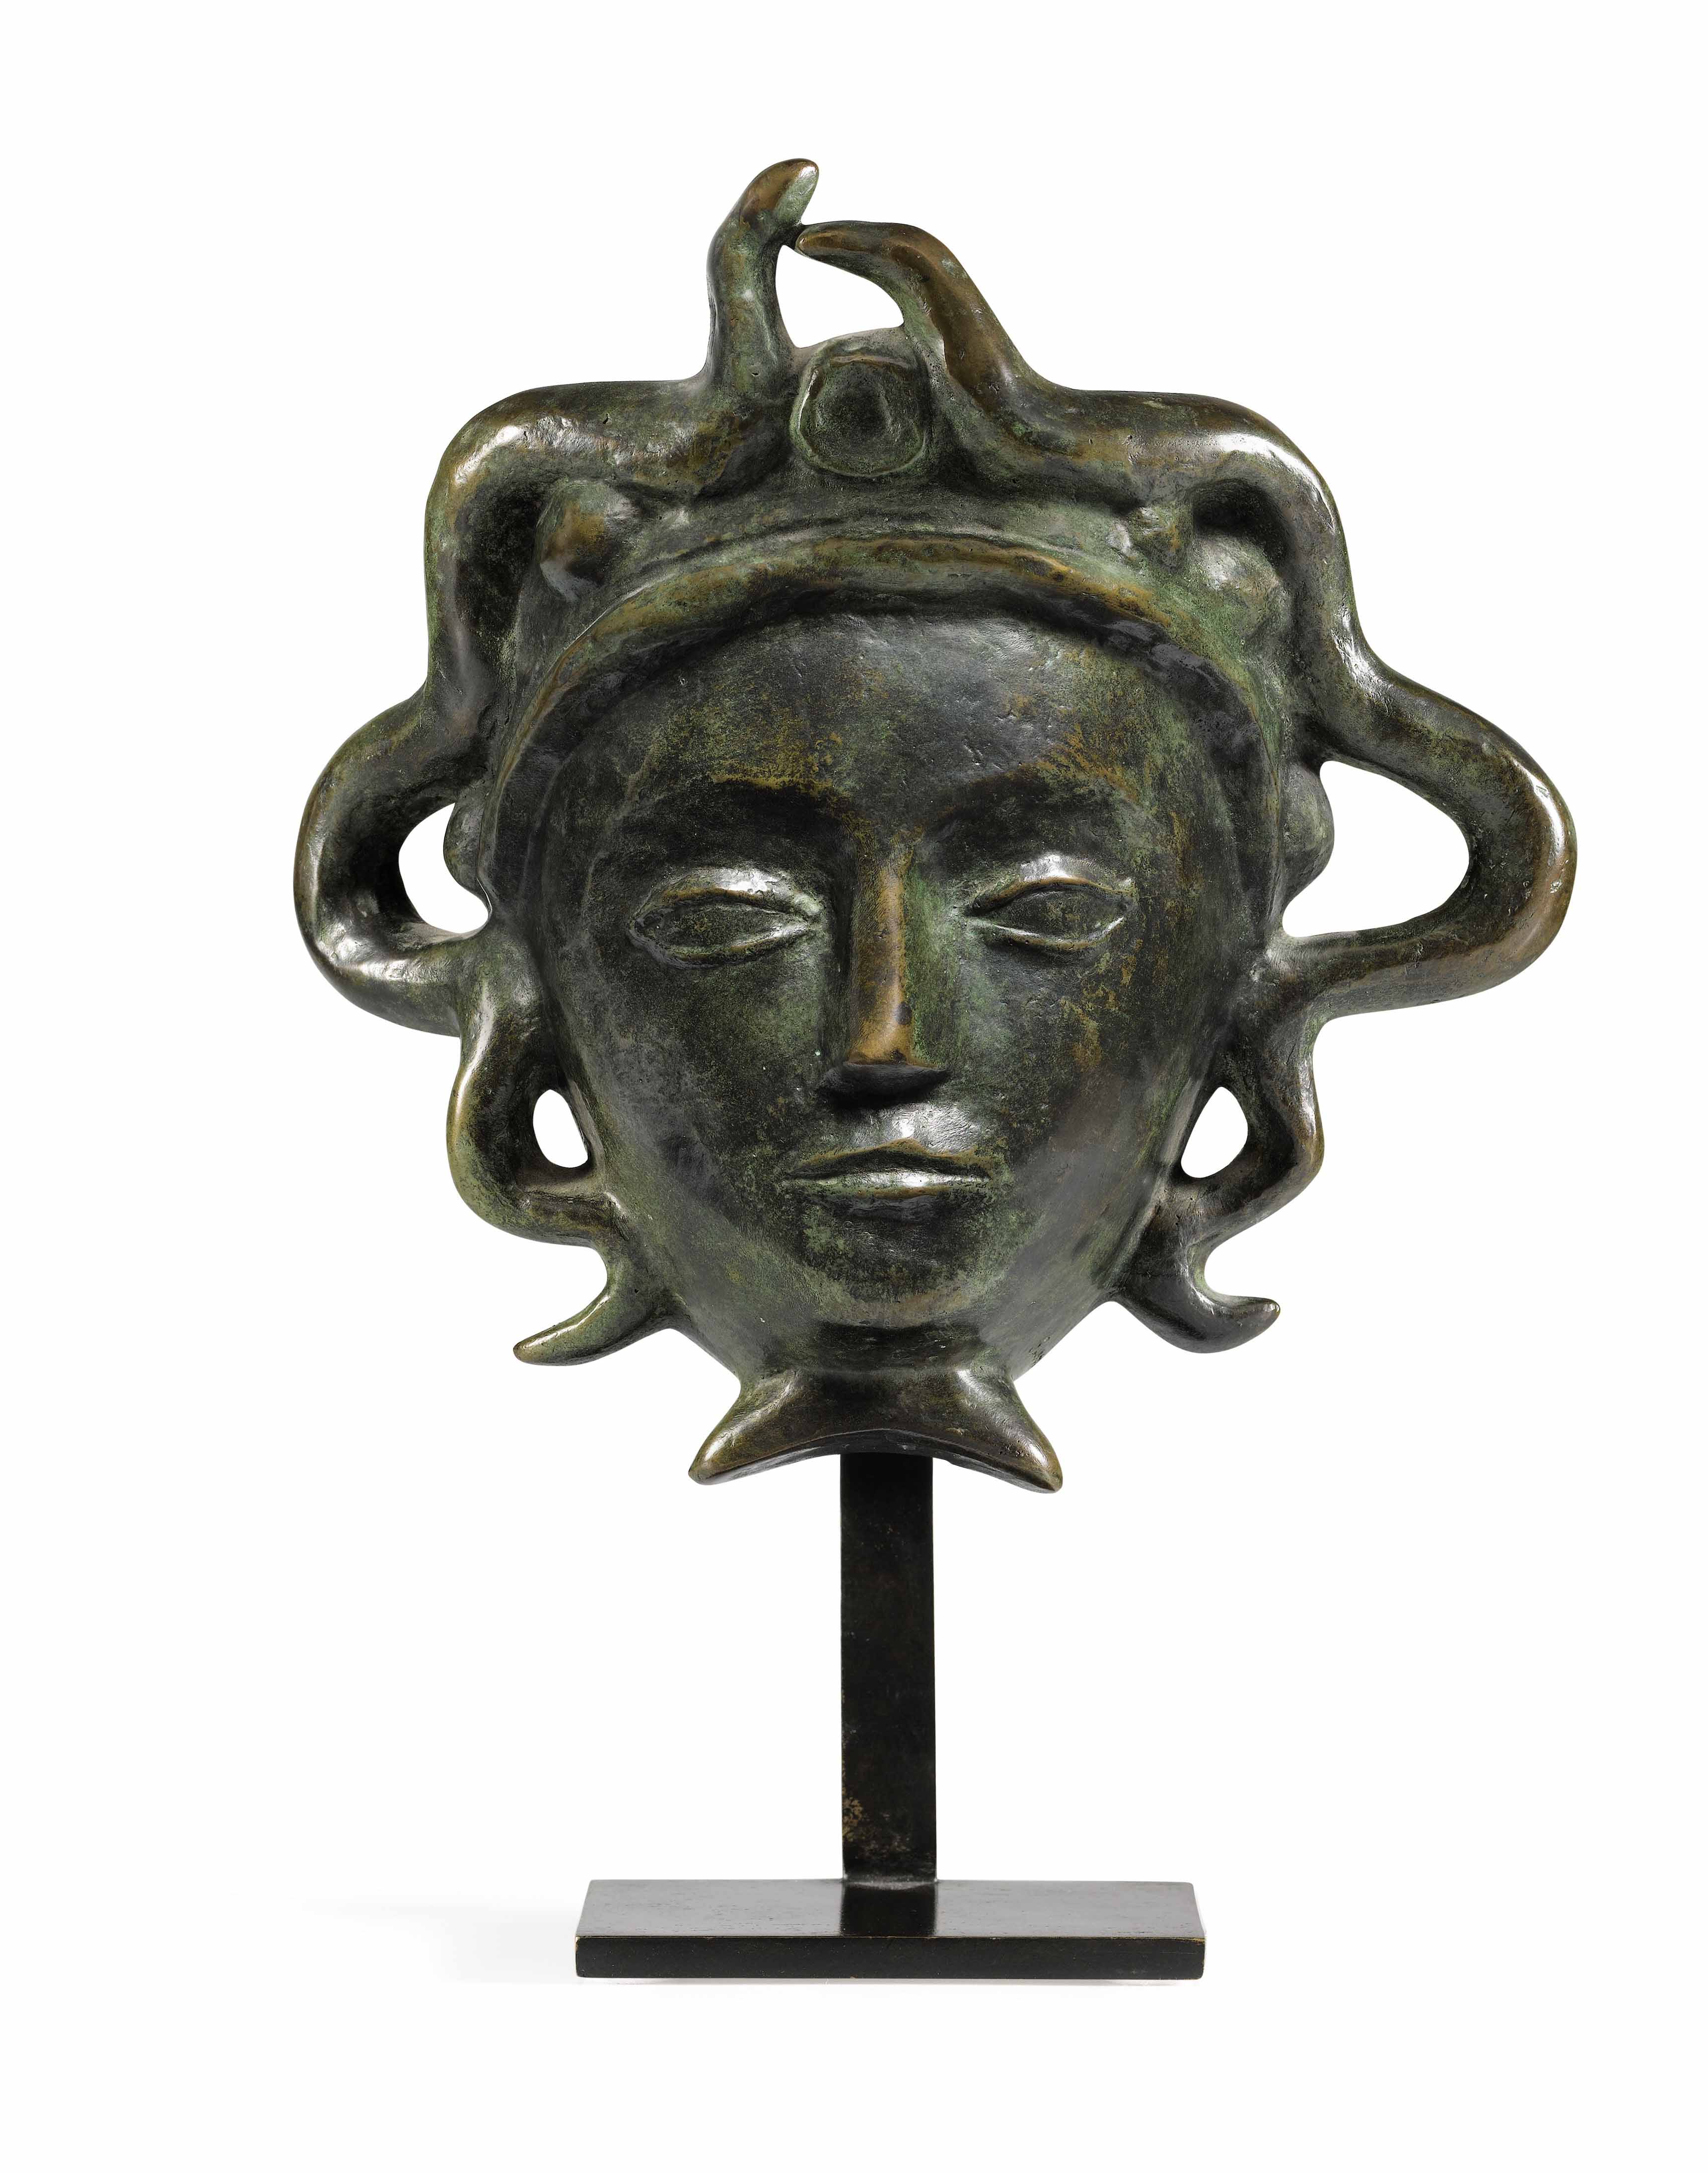 ALBERTO GIACOMETTI MASQUE AUX SERPENTS SCONCE, DESIGNED IN 1934 sconce in patinated bronze With foundry mark Susse Fondeur Paris Estimate : 80,000 EUR - 120,000 EUR